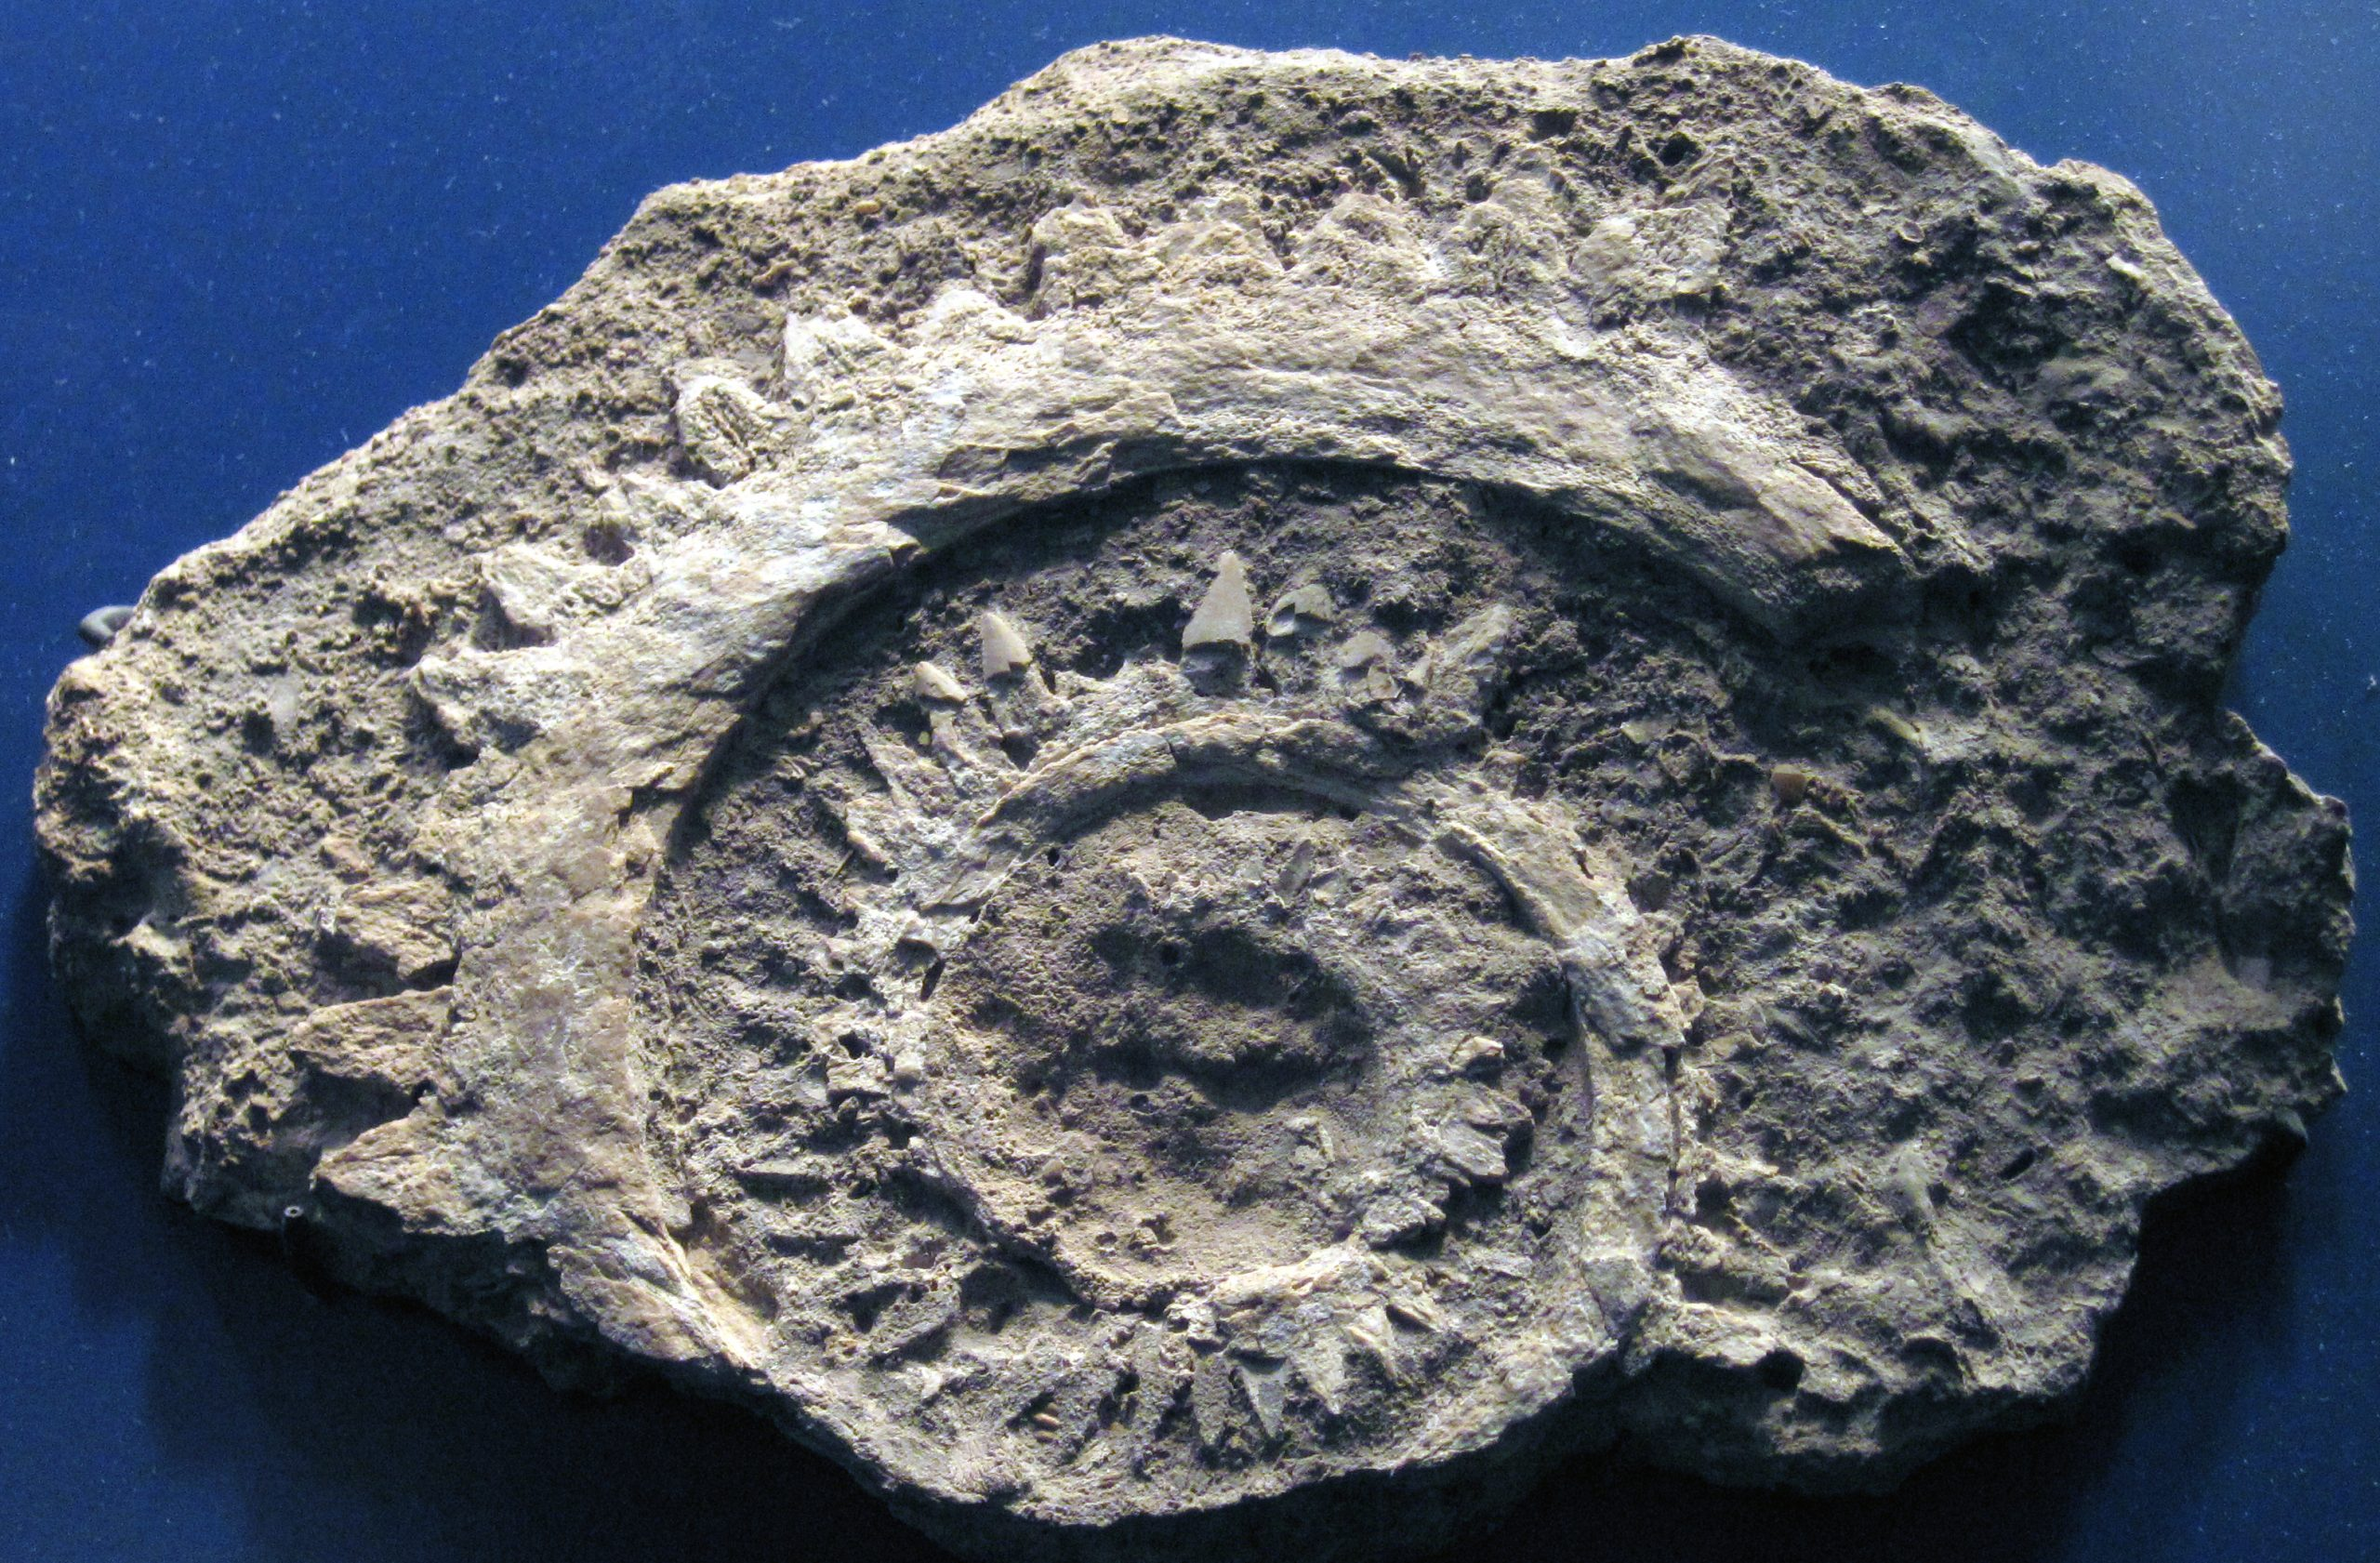 Fossil jaw of a Helicoprion ferrieri